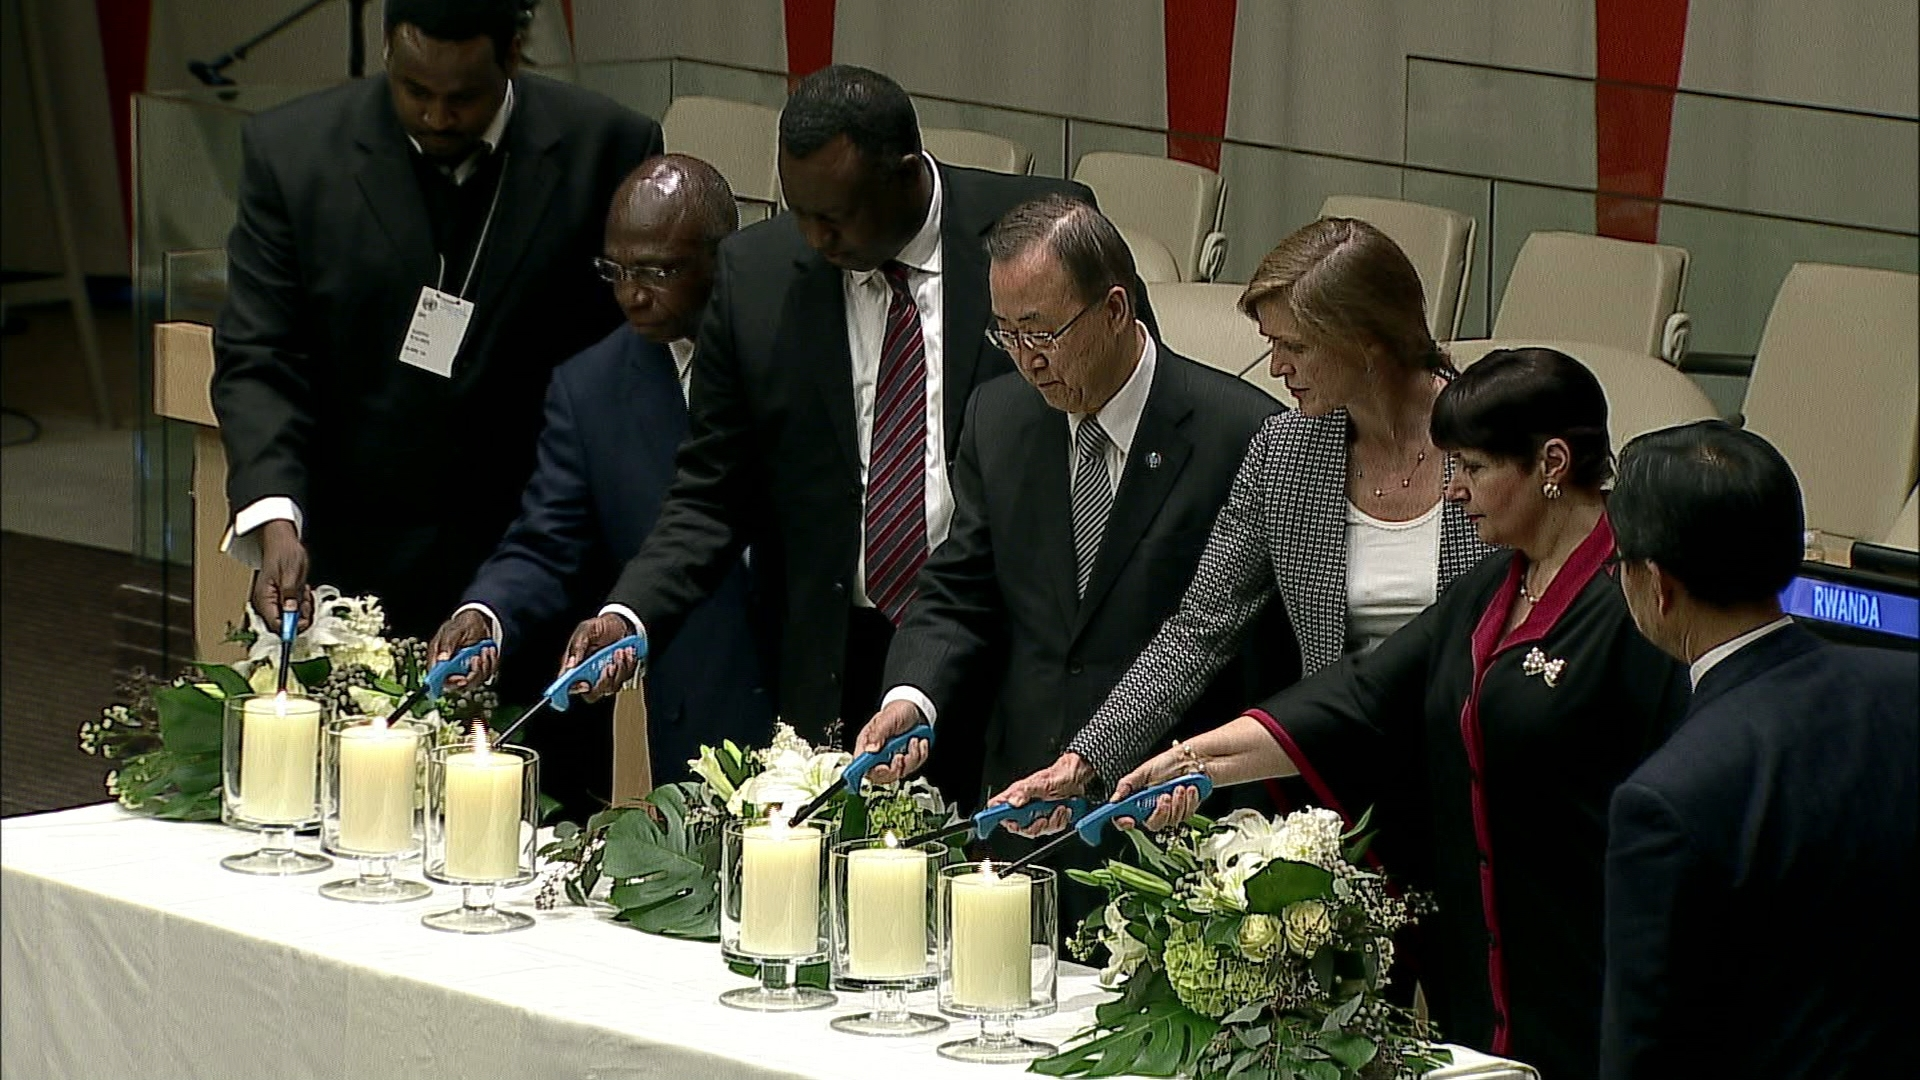 Selected frame from video story UN / RWANDA GENOCIDE